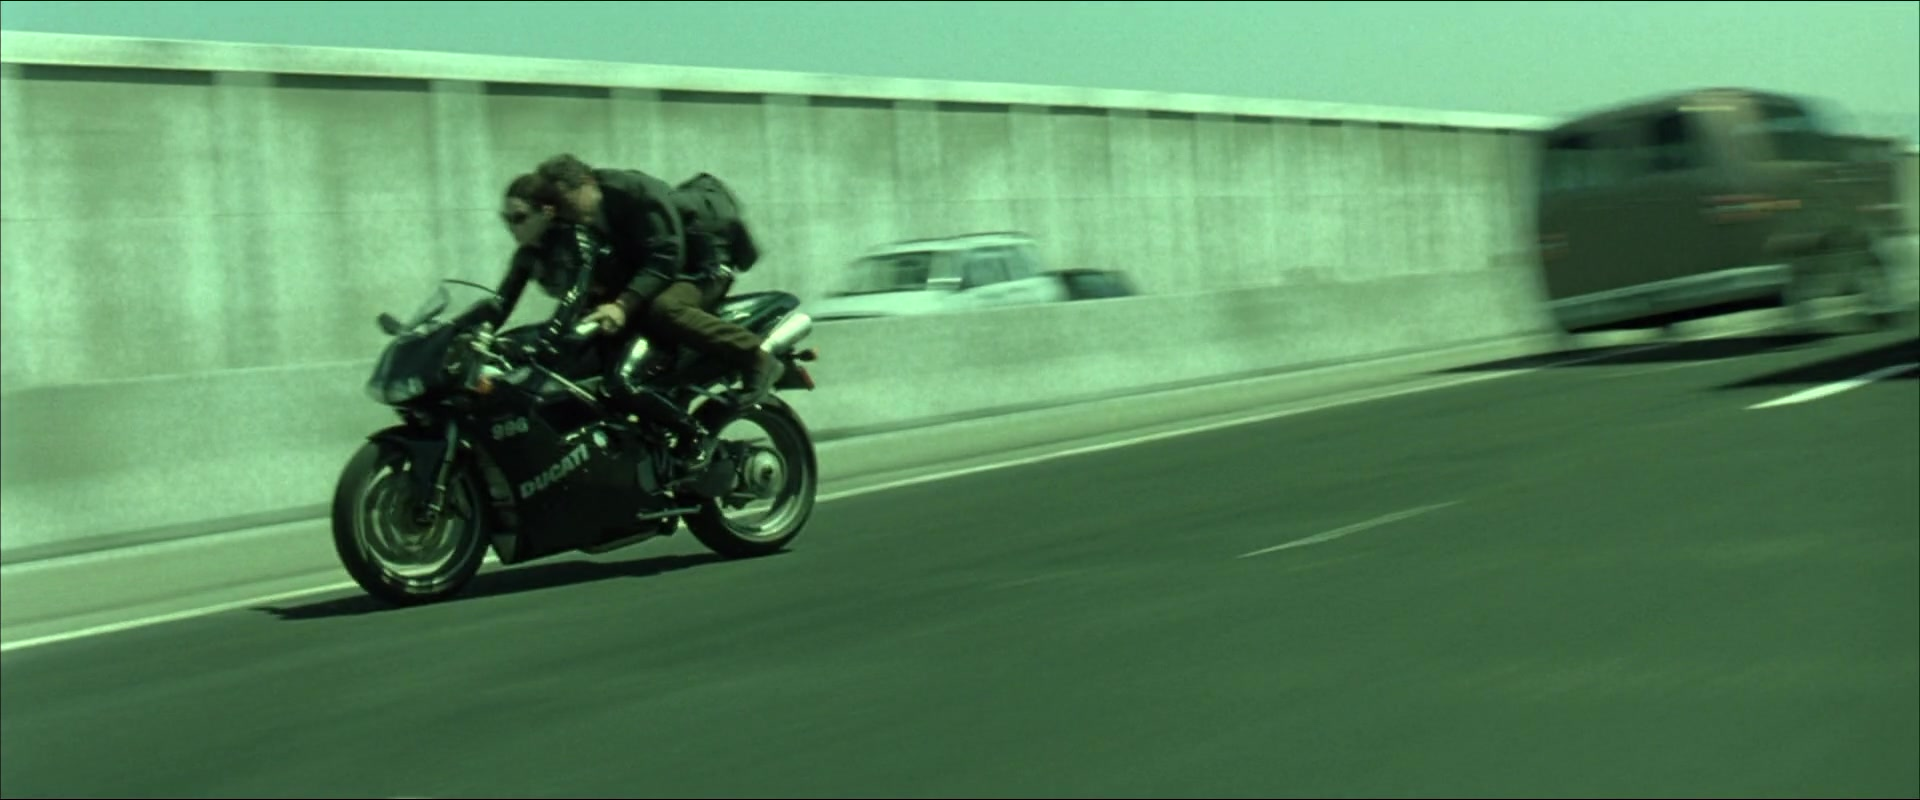 Ducati 996 Motorcycle In The Matrix Reloaded 2003 Movie